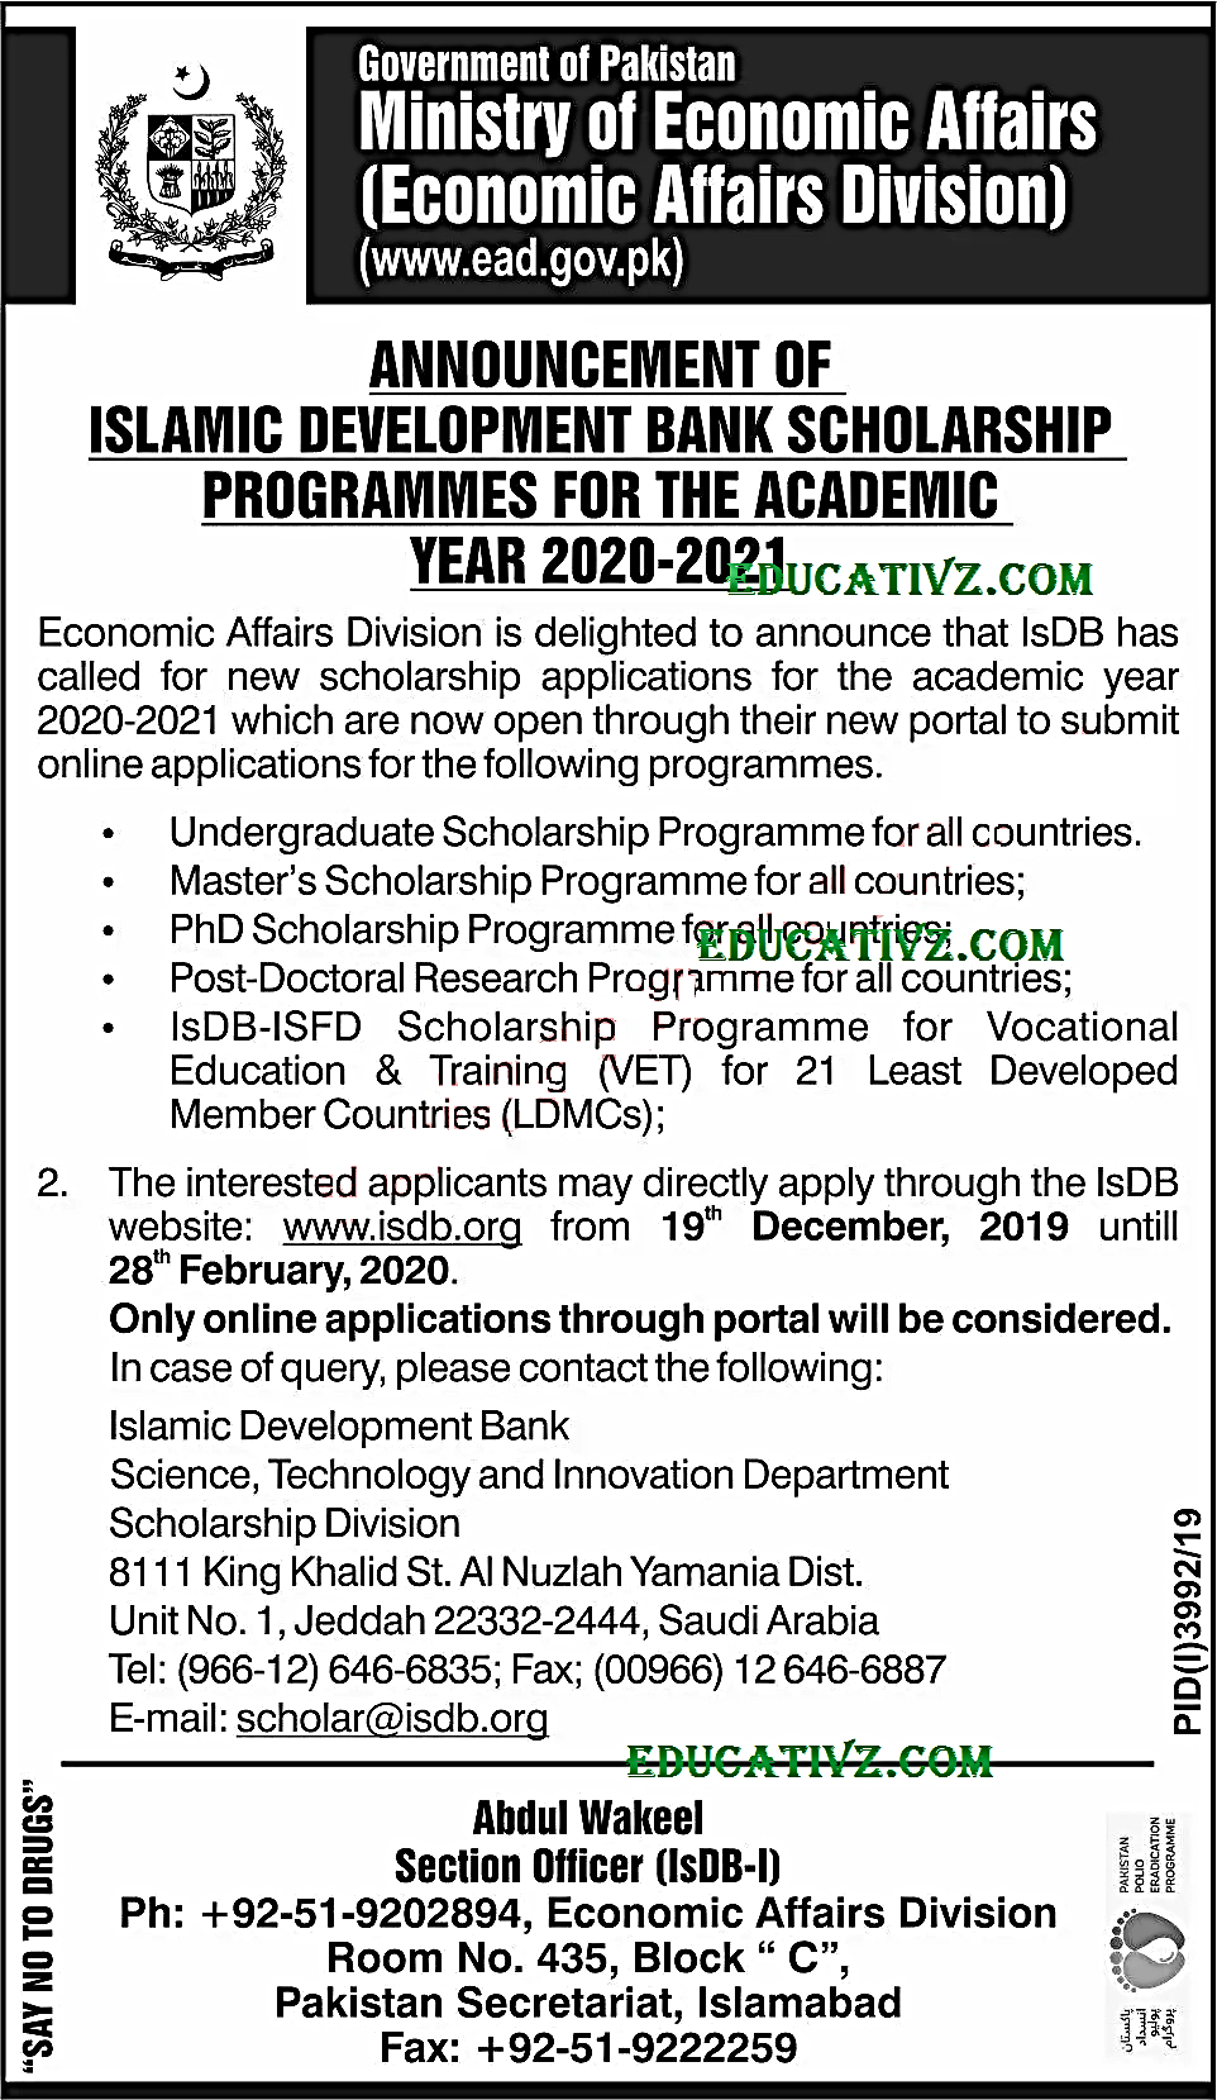 Islamic Development Bank Scholarship Programme 2020 2021 Online Application Form Latest Educativz